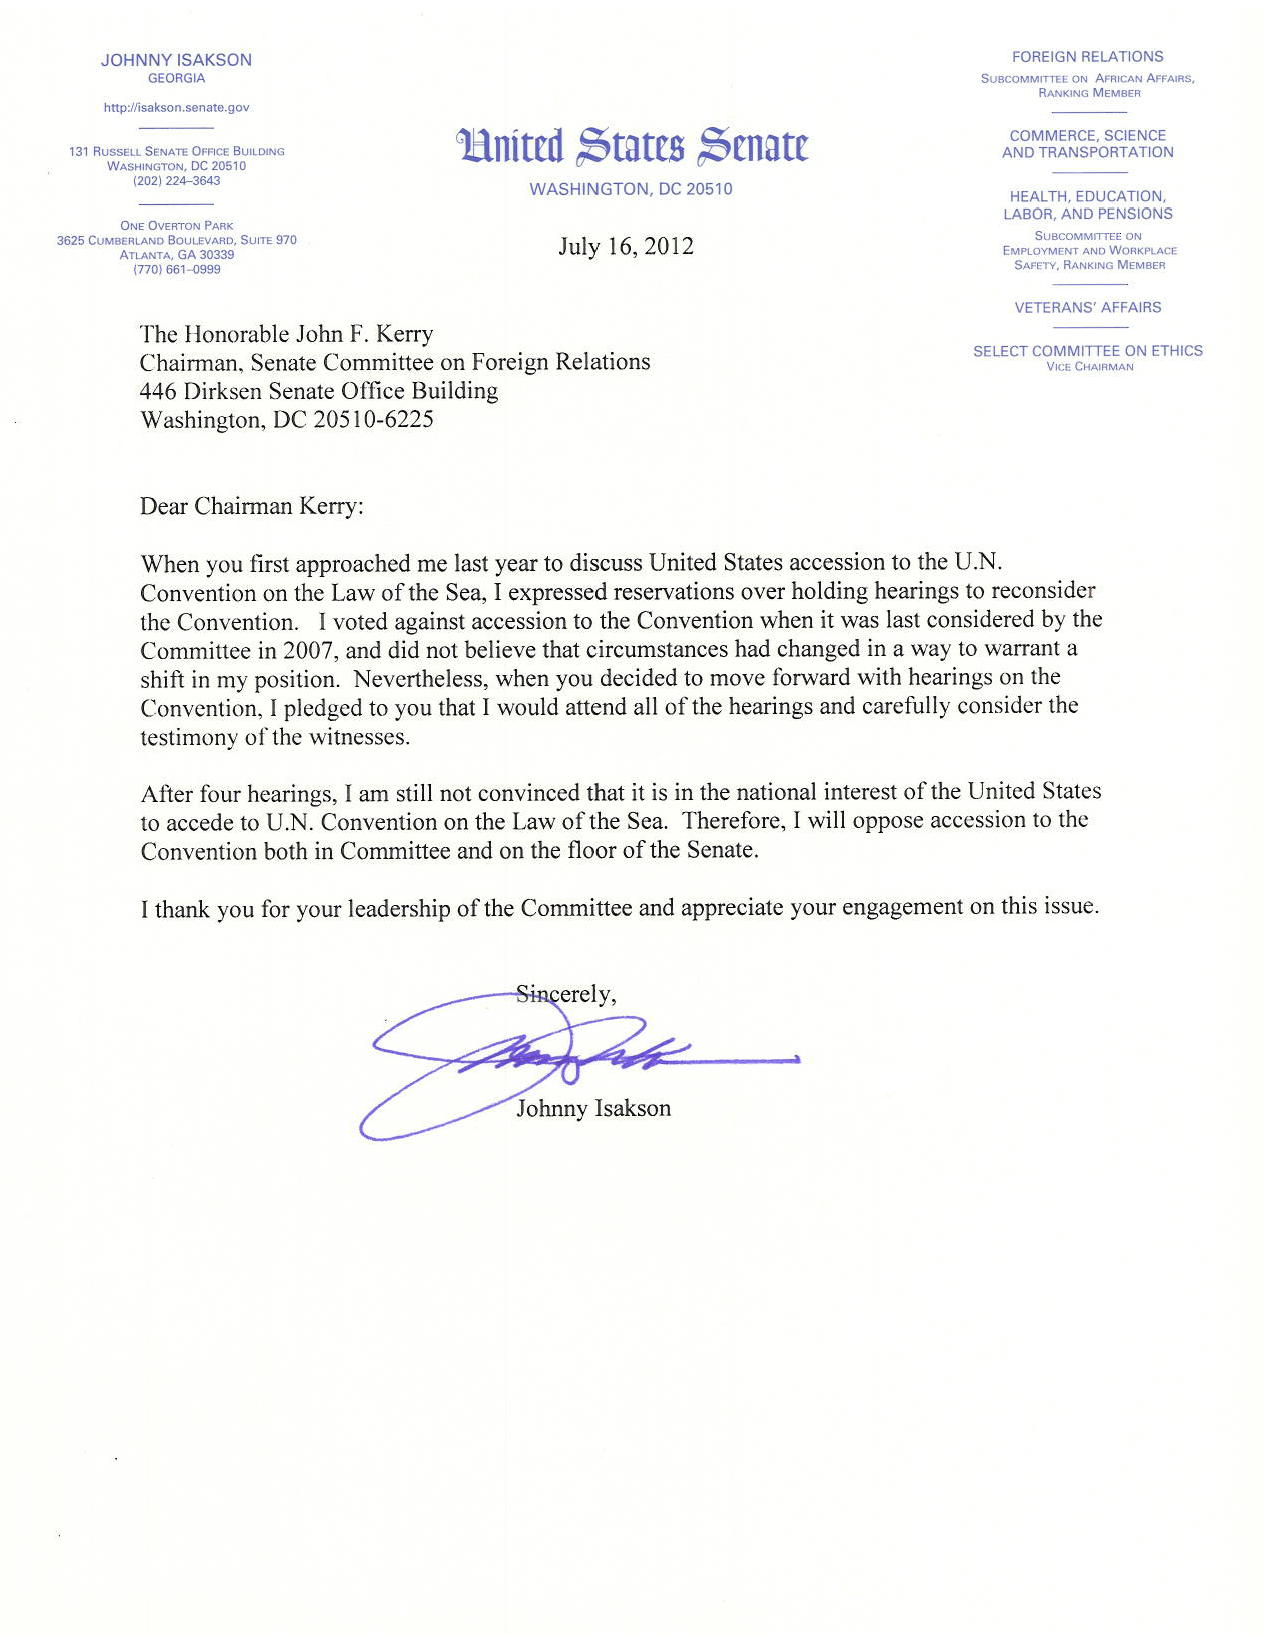 Law of the Sea Letter from Isakson to Kerry